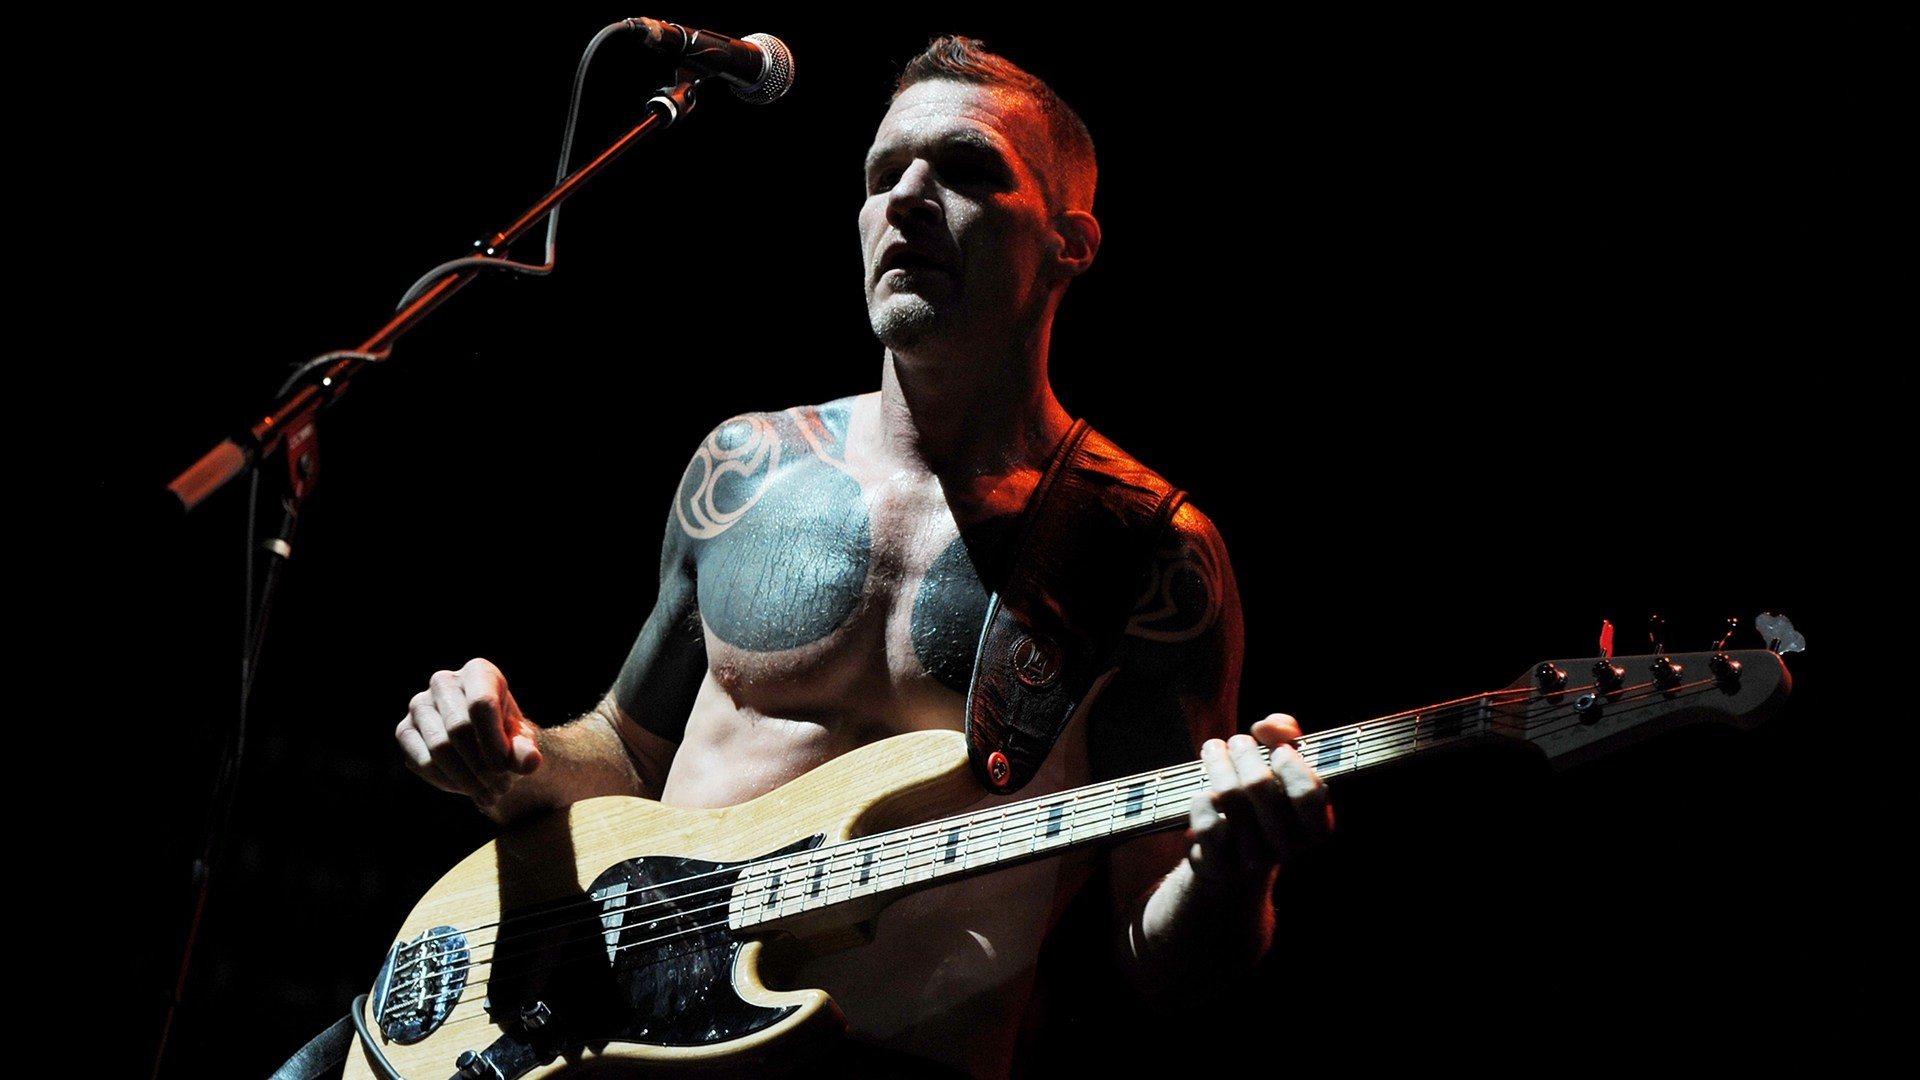 Res: 1920x1080, Tim Commerford Rage Against the Machine 1080p HD Wallpaper Background